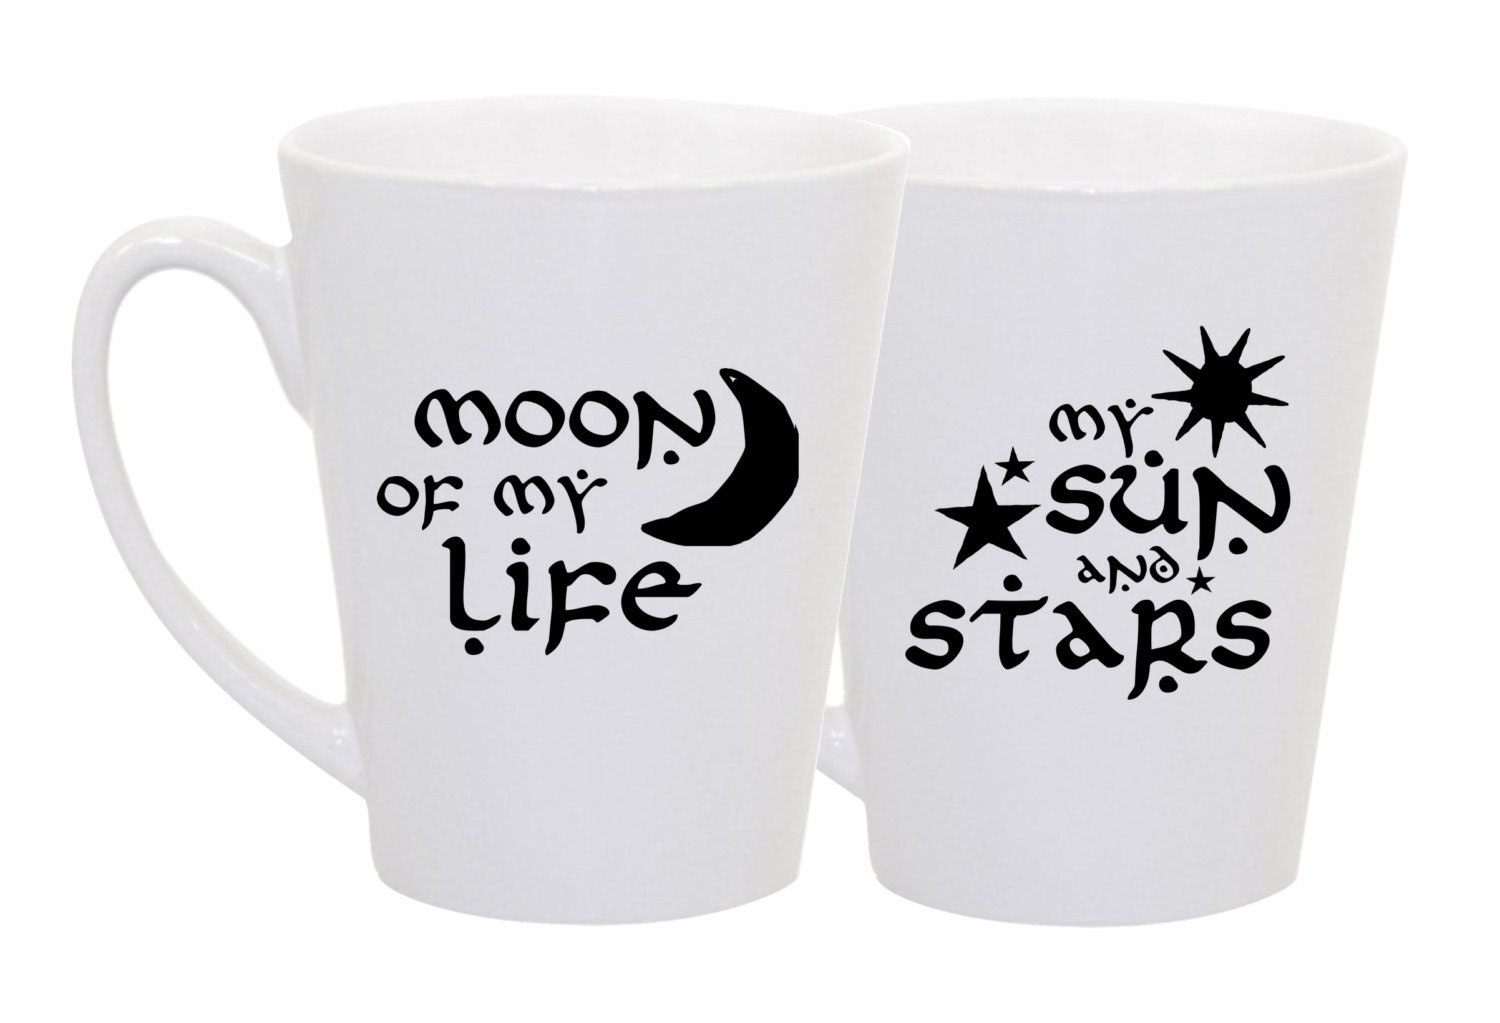 """Game of Thrones """"Moon of My Life"""" and """"My Sun and Stars""""- Set of 2 coffee mugs"""